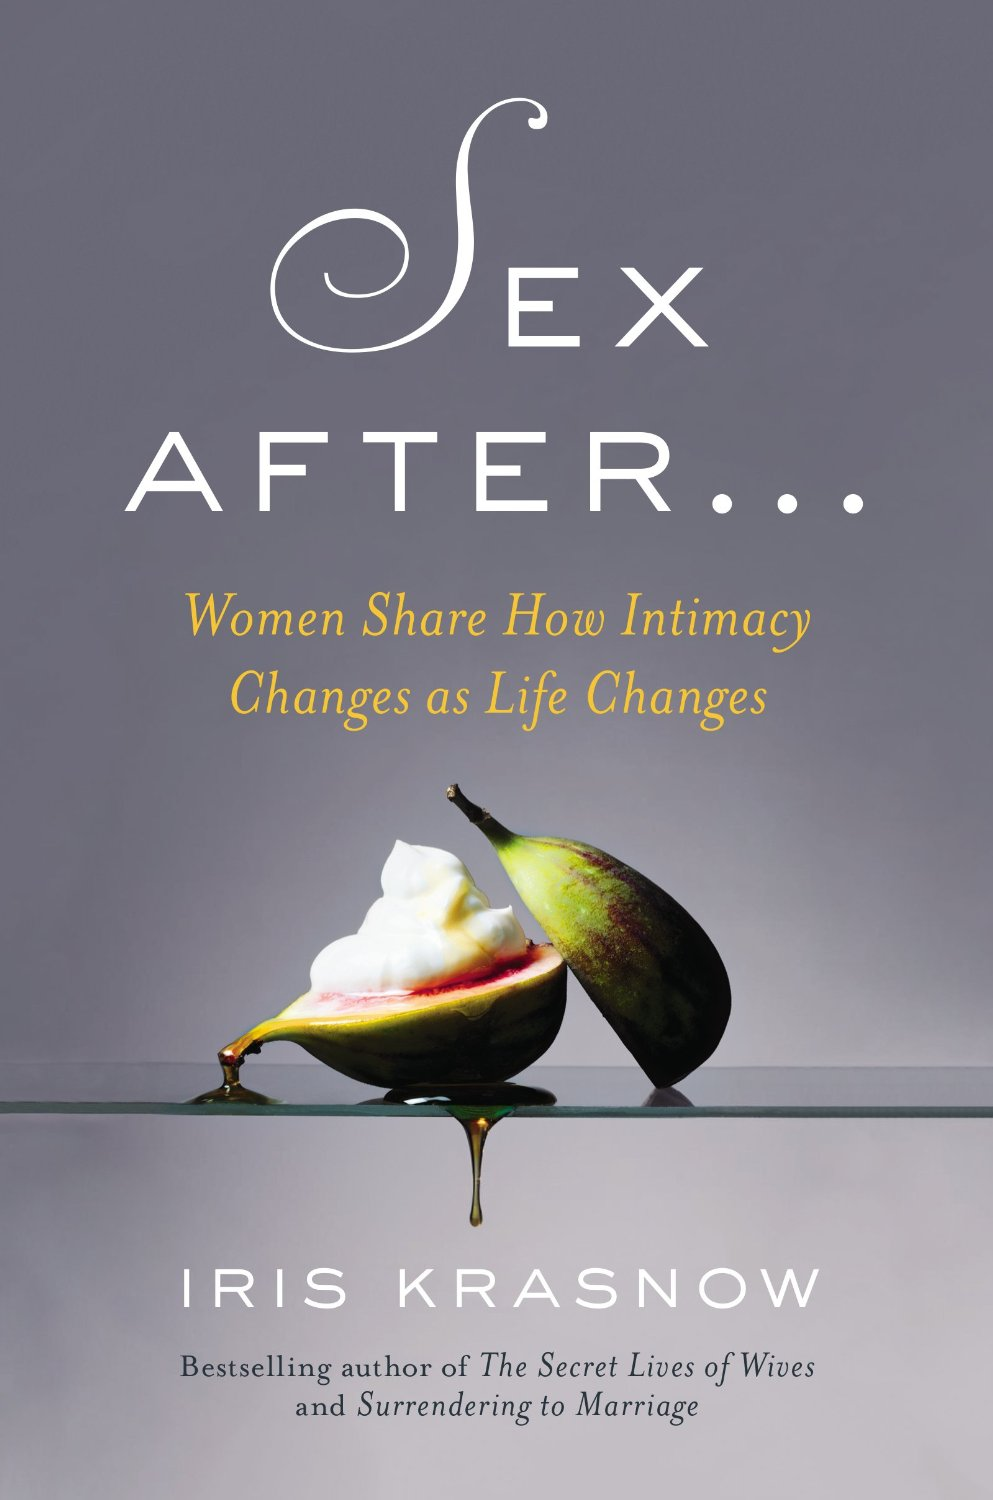 Sex After . . . : Women Share How Intimacy Changes as Life Changes